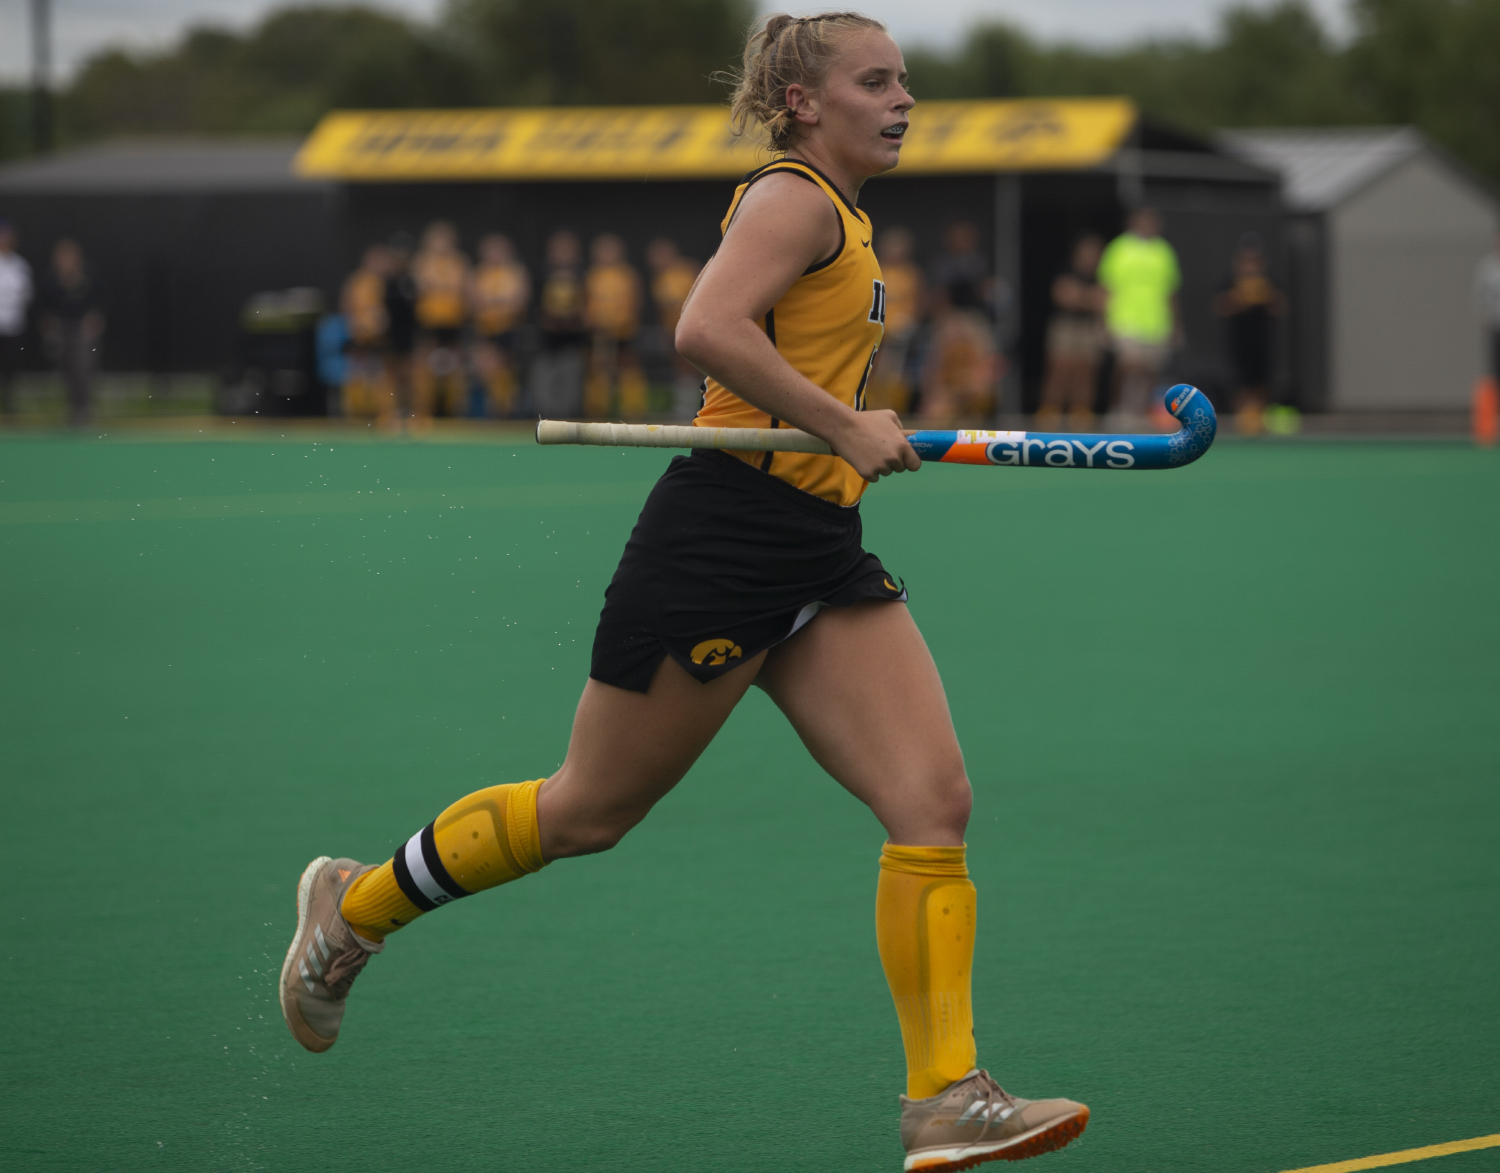 Iowa+midfielder+Katie+Birch+runs+down+the+field+during+a+field+hockey+game+between+Iowa+and+Columbia+at+Grant+Field+on+Sunday%2C+September+8%2C+2019.+The+Hawkeyes+defeated+the+Lions%2C+3-1.